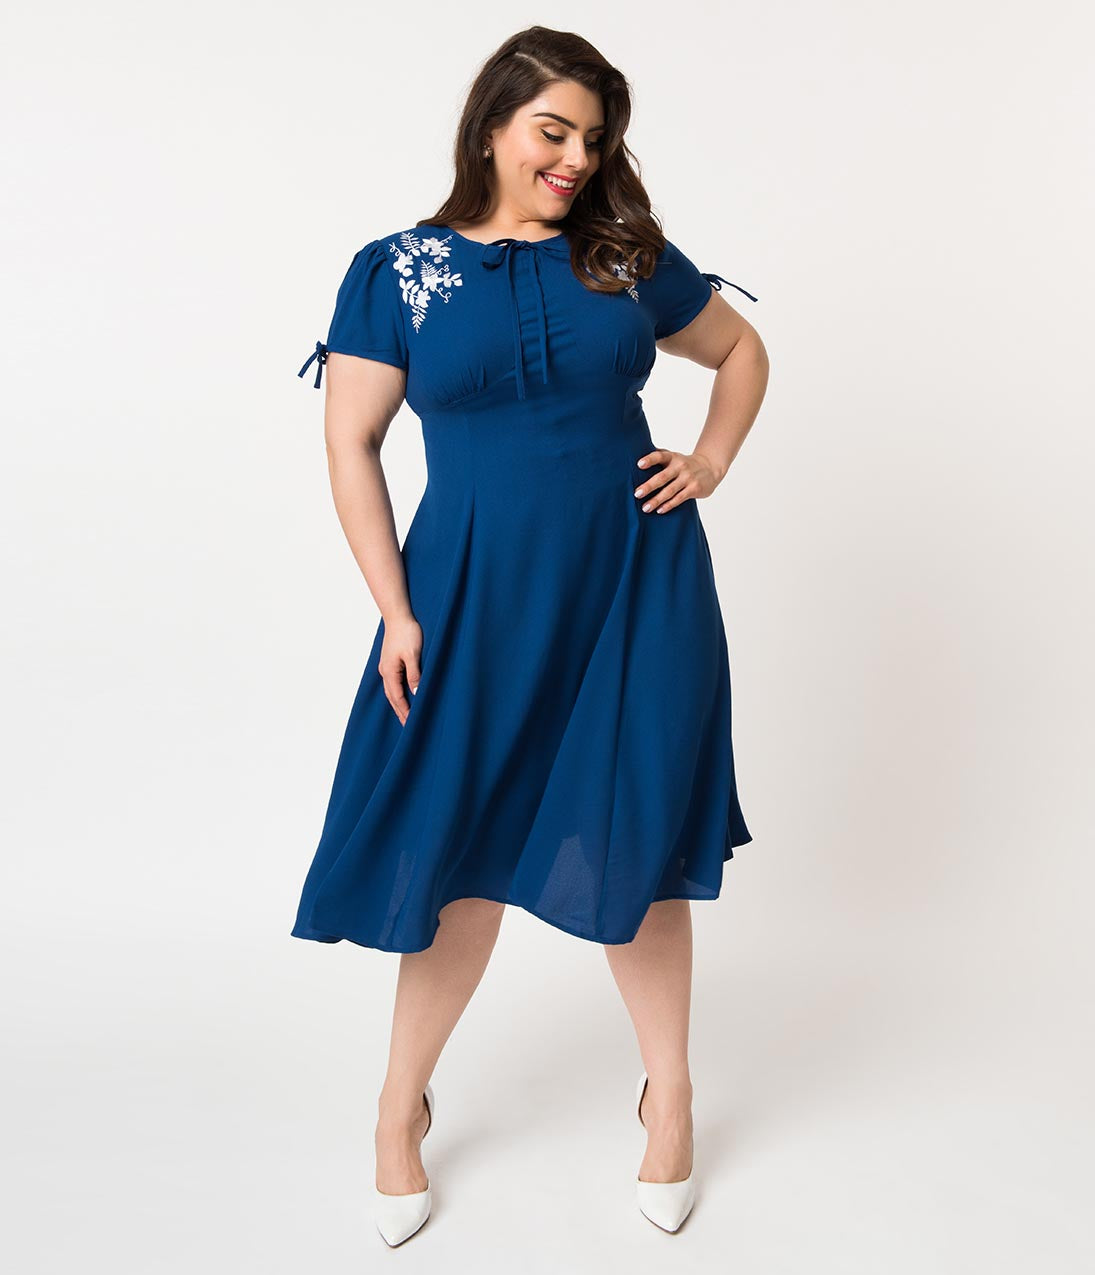 How to Wear 1940s Women's Fashion Plus Size 1940S Style Royal Blue Crepe  White Embroidered Floral Ava Swing Dress $78.00 AT vintagedancer.com